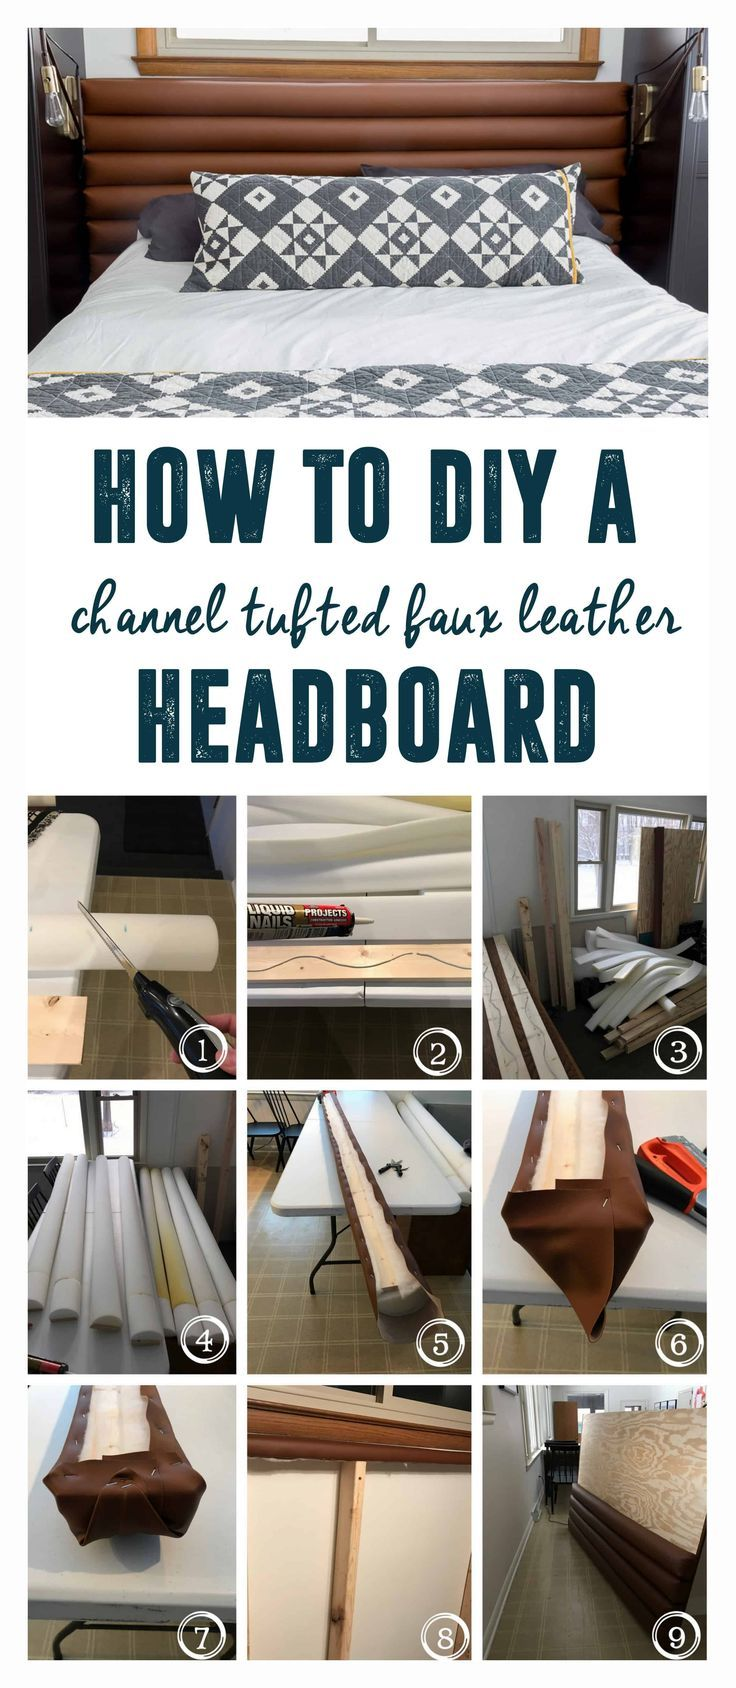 DIY Faux Leather Channel Tufted Headboard is part of Home Accents DIY Headboards - Channel Tufted Headboard, DIY Faux Leather Headboard, DIY Headboard, Channel Headboard, Faux Leather Headboard, DIY with Leather, Camel Leather Headboard, BrightGreenDoor Headboard, Bright Green Door Headboard, Modern Master Bedroom